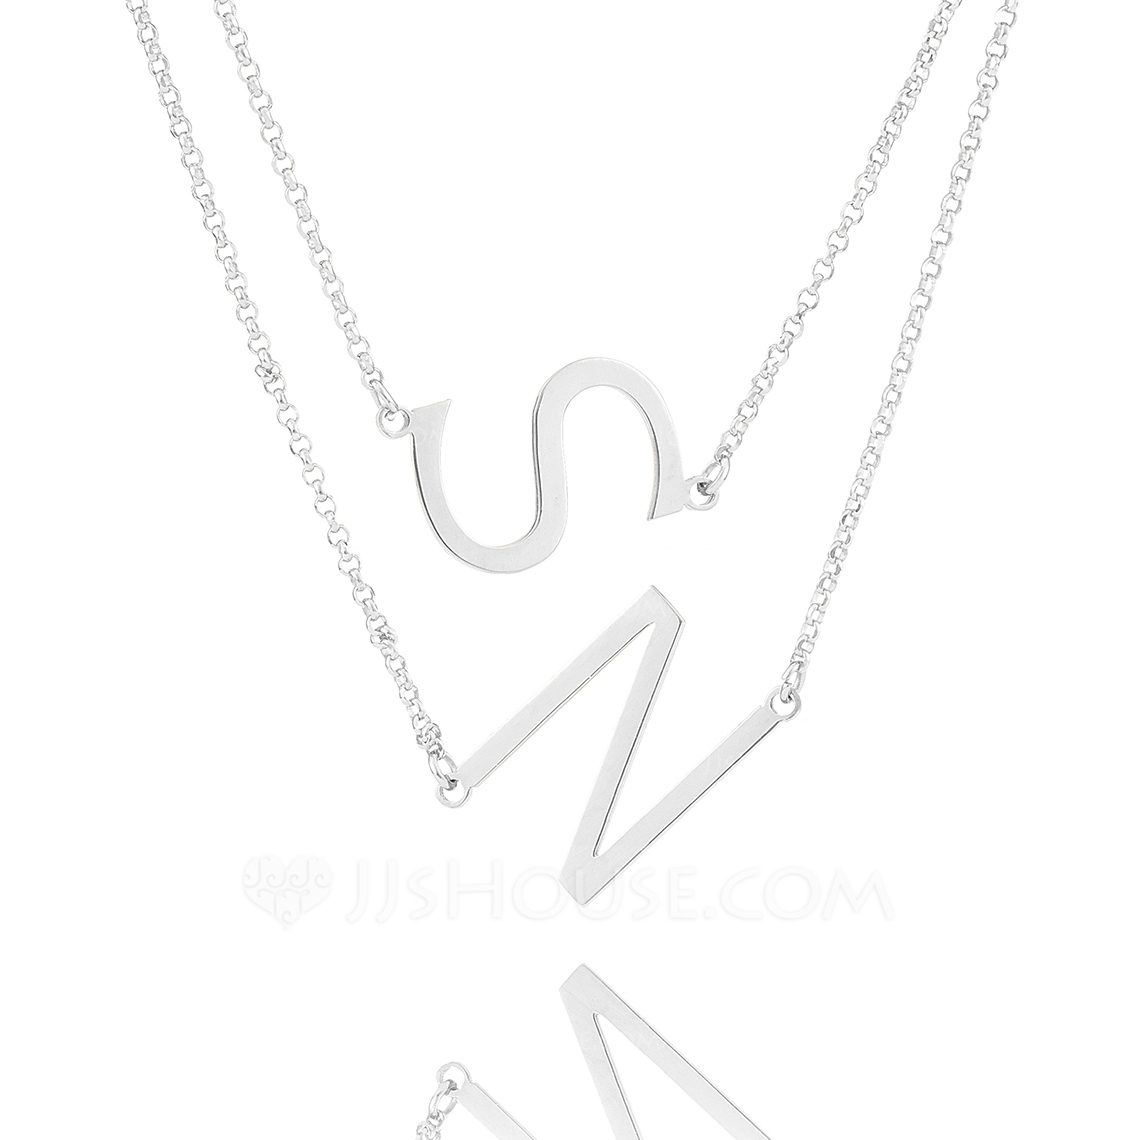 Custom Sterling Silver Double Sideways Initial Necklace - Christmas Gifts